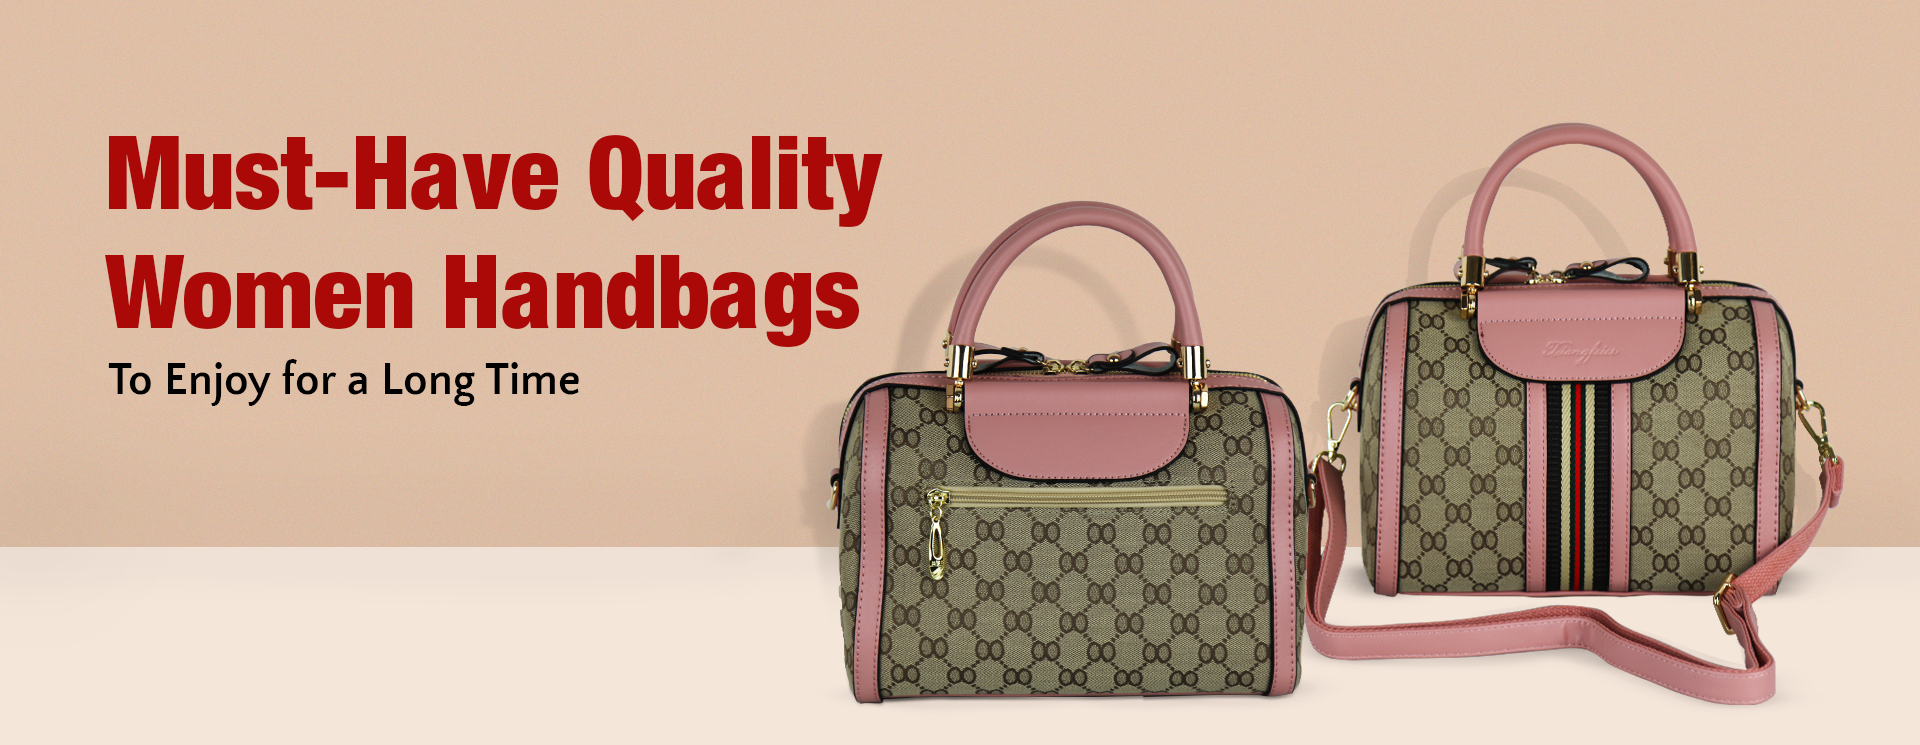 Must-Have Quality Women Handbags To Enjoy for a Long Time